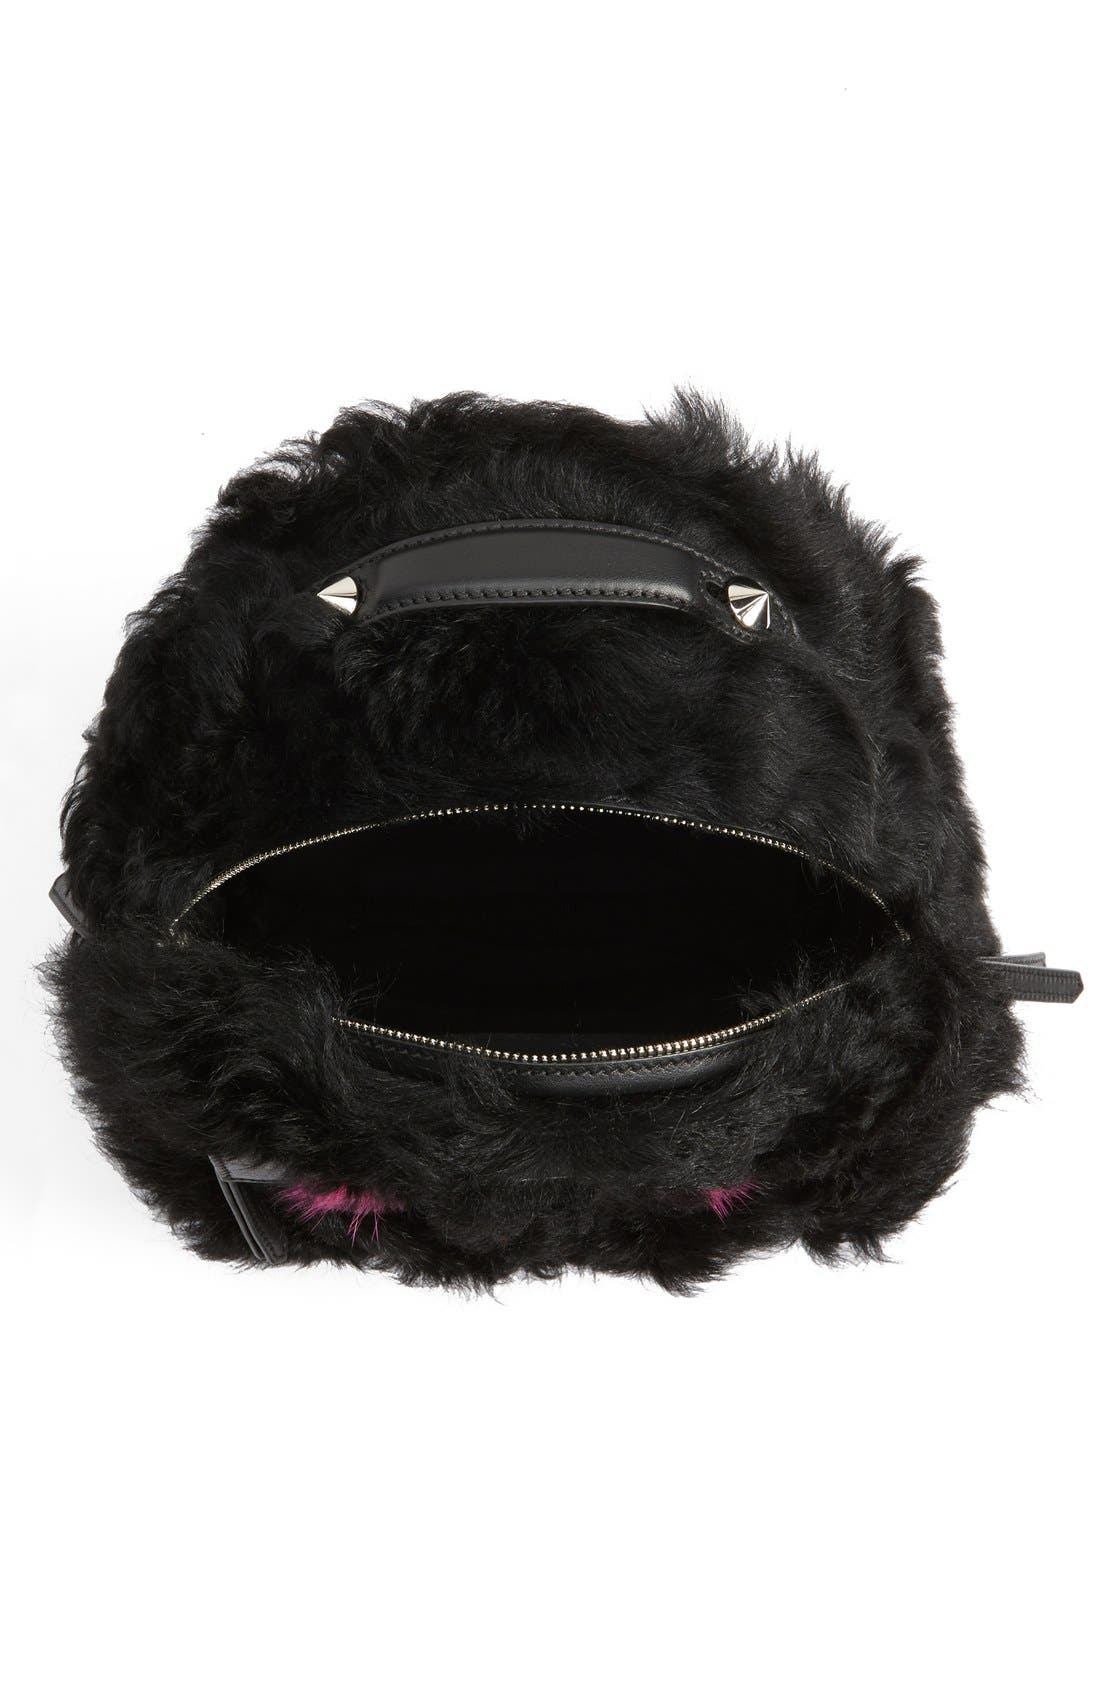 'Mini Monster' Genuine Shearling & Genuine Mink Fur Backpack,                             Alternate thumbnail 4, color,                             Black/ Fuchsia / Palladium